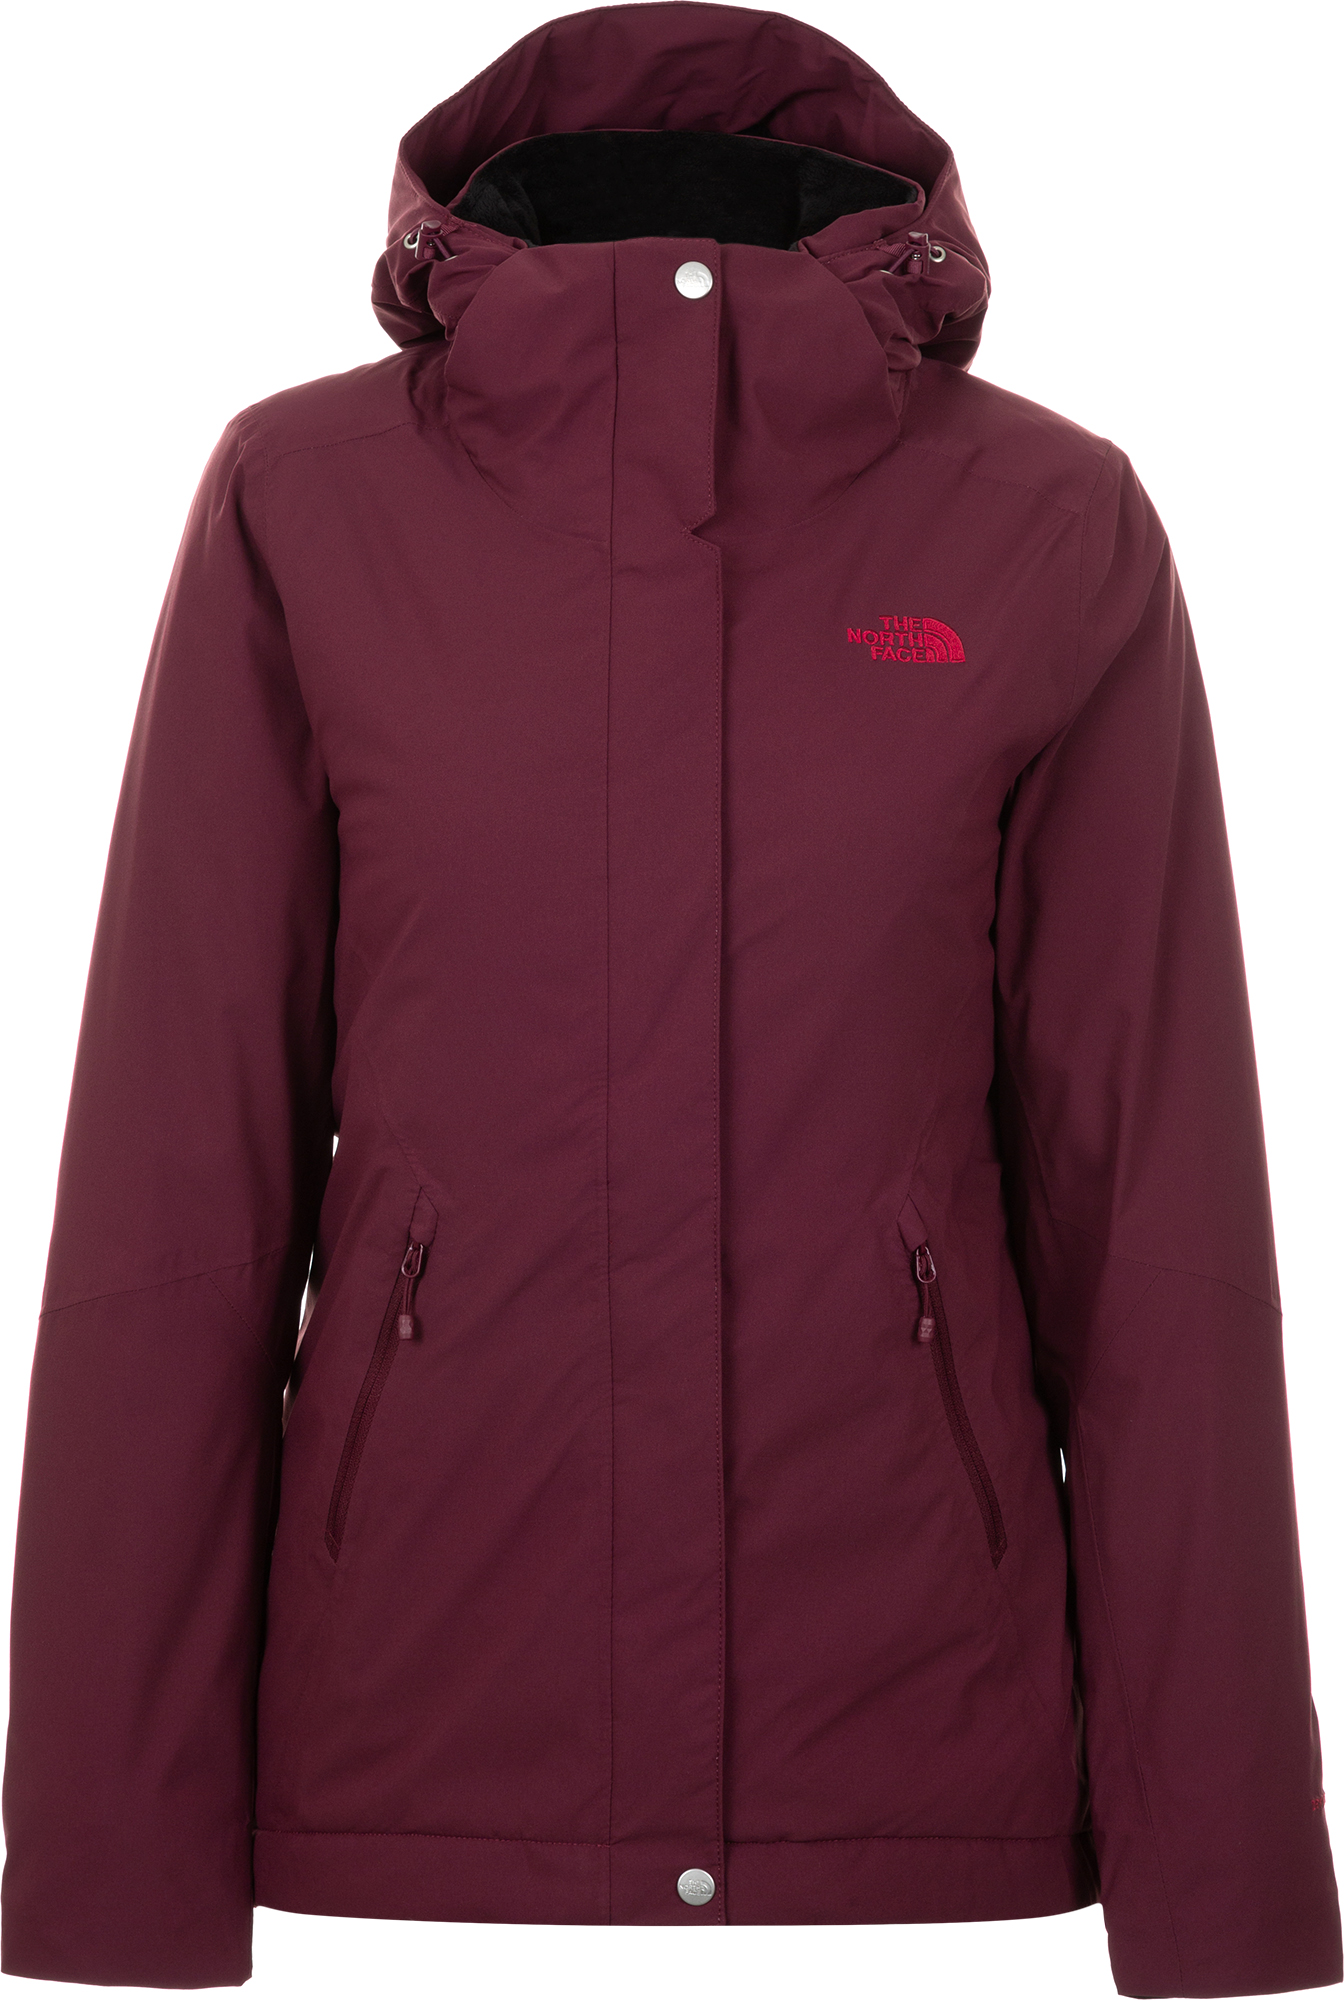 The North Face Куртка утепленная женская The North Face Inlux Insulated, размер 46